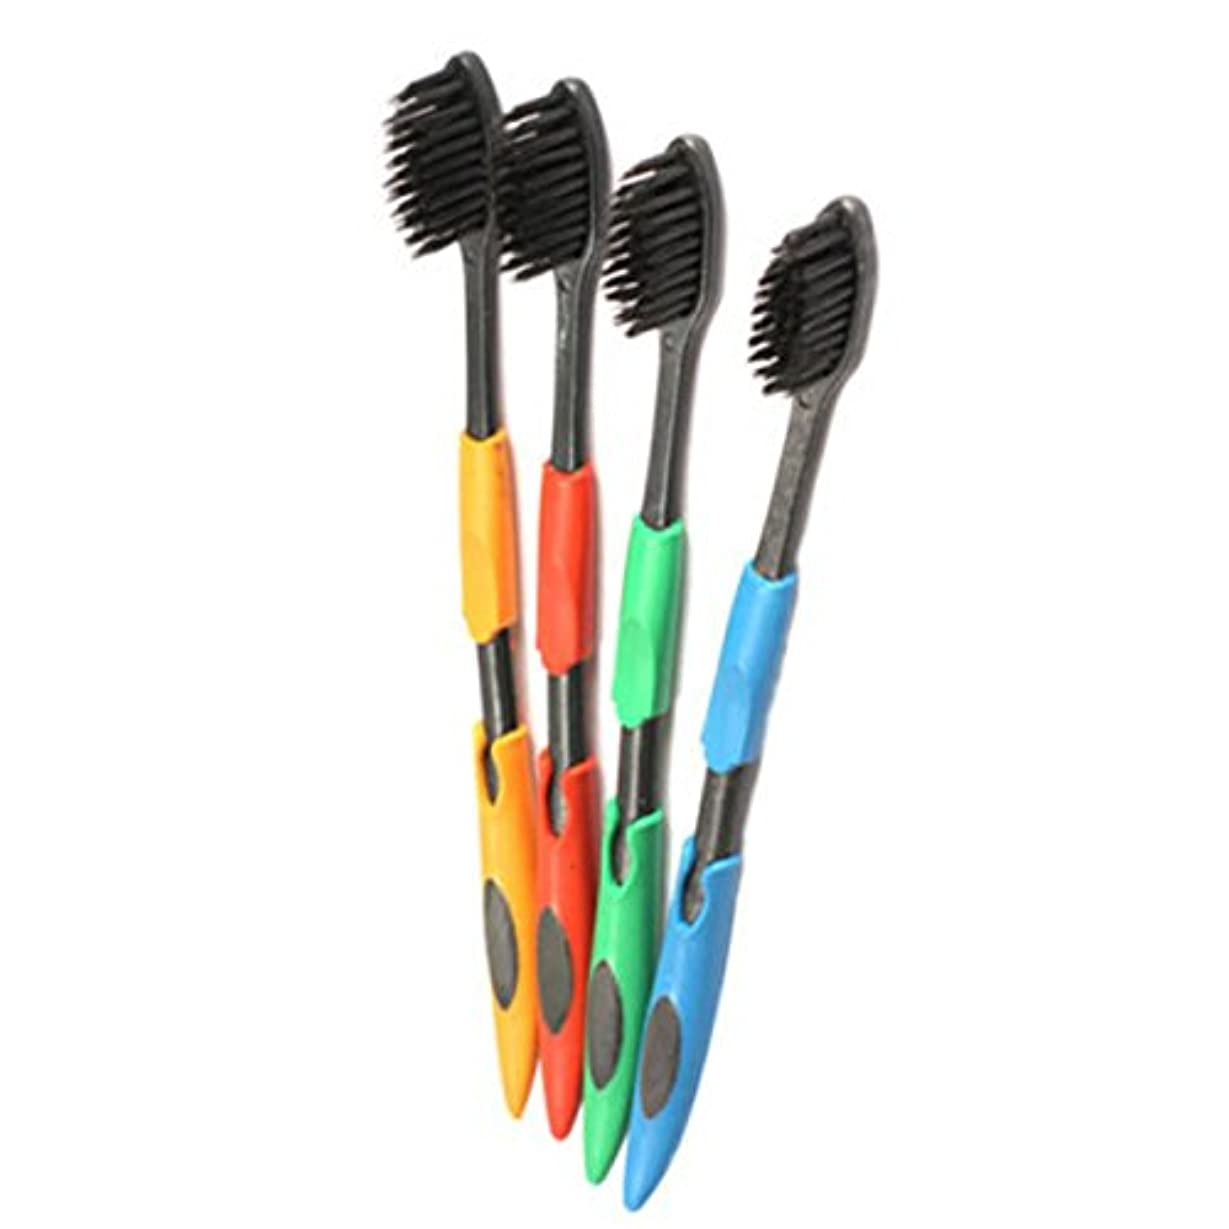 ティッシュ人類公園Generic 4 pcs/set Double Ultra Soft Toothbrush Bamboo Charcoal Nano Brush Oral Dental Care Set Travel Supplies